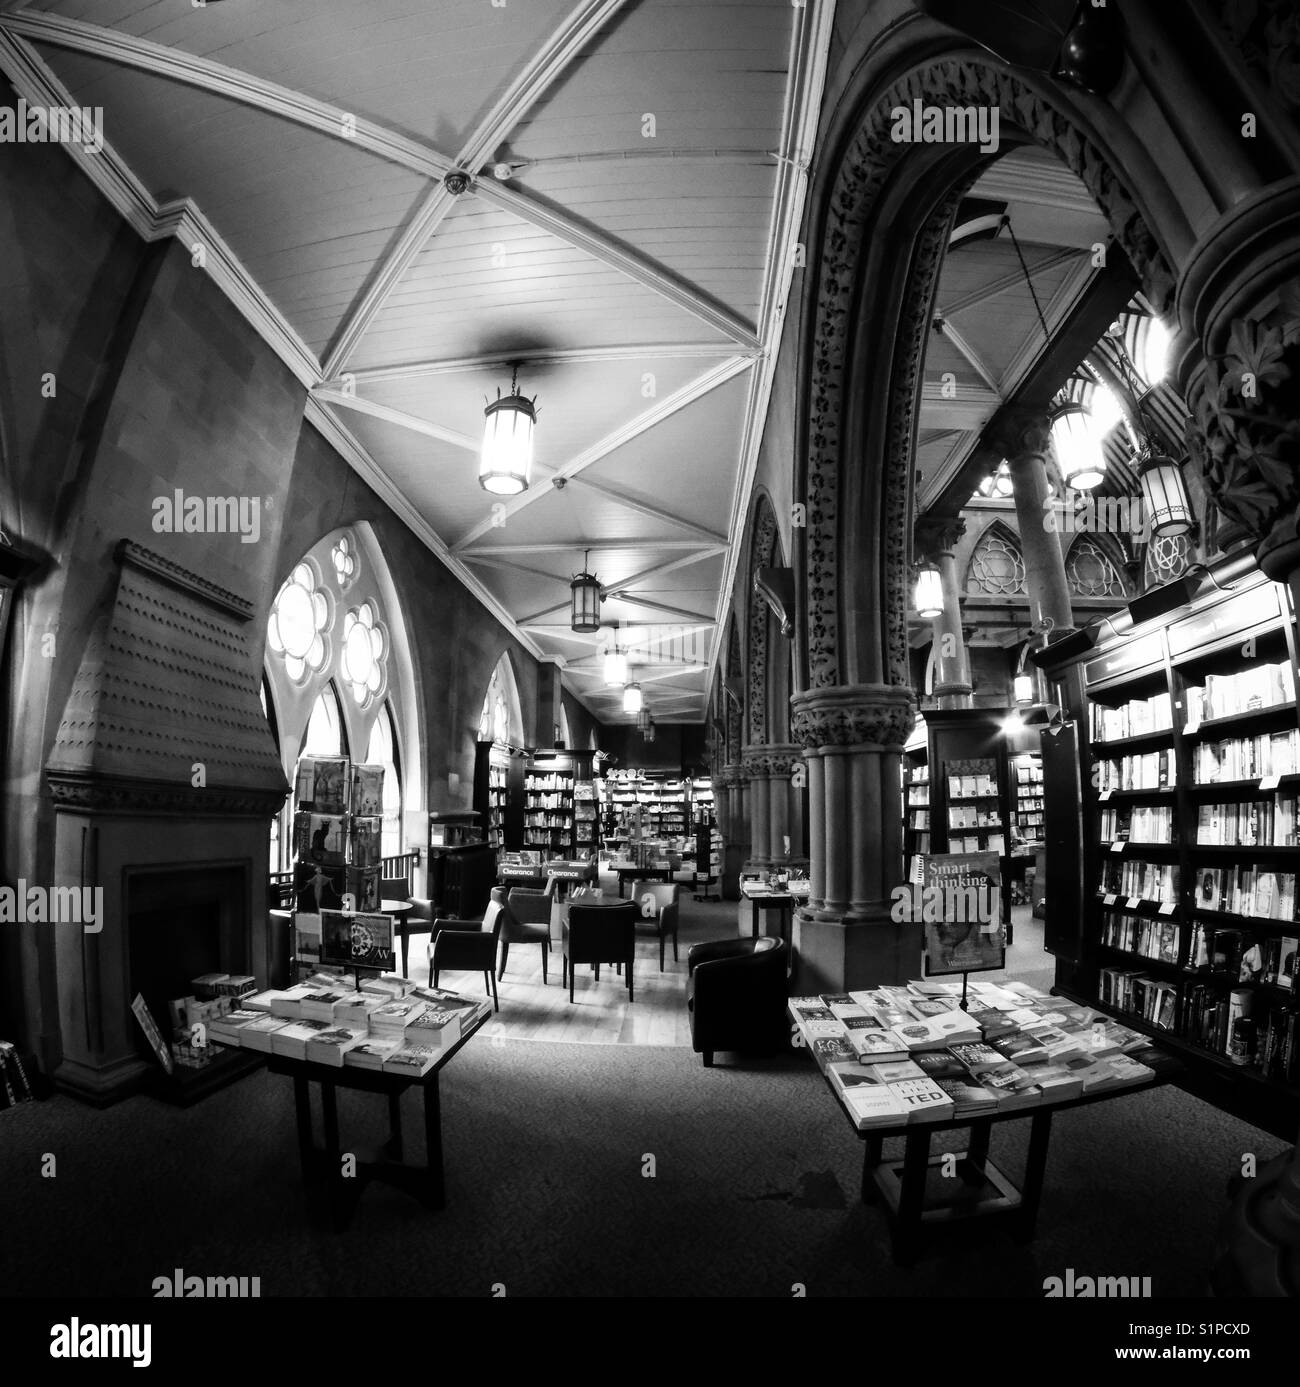 Inside the Wool Exchange bookstore in Bradford, West Yorkshire. - Stock Image